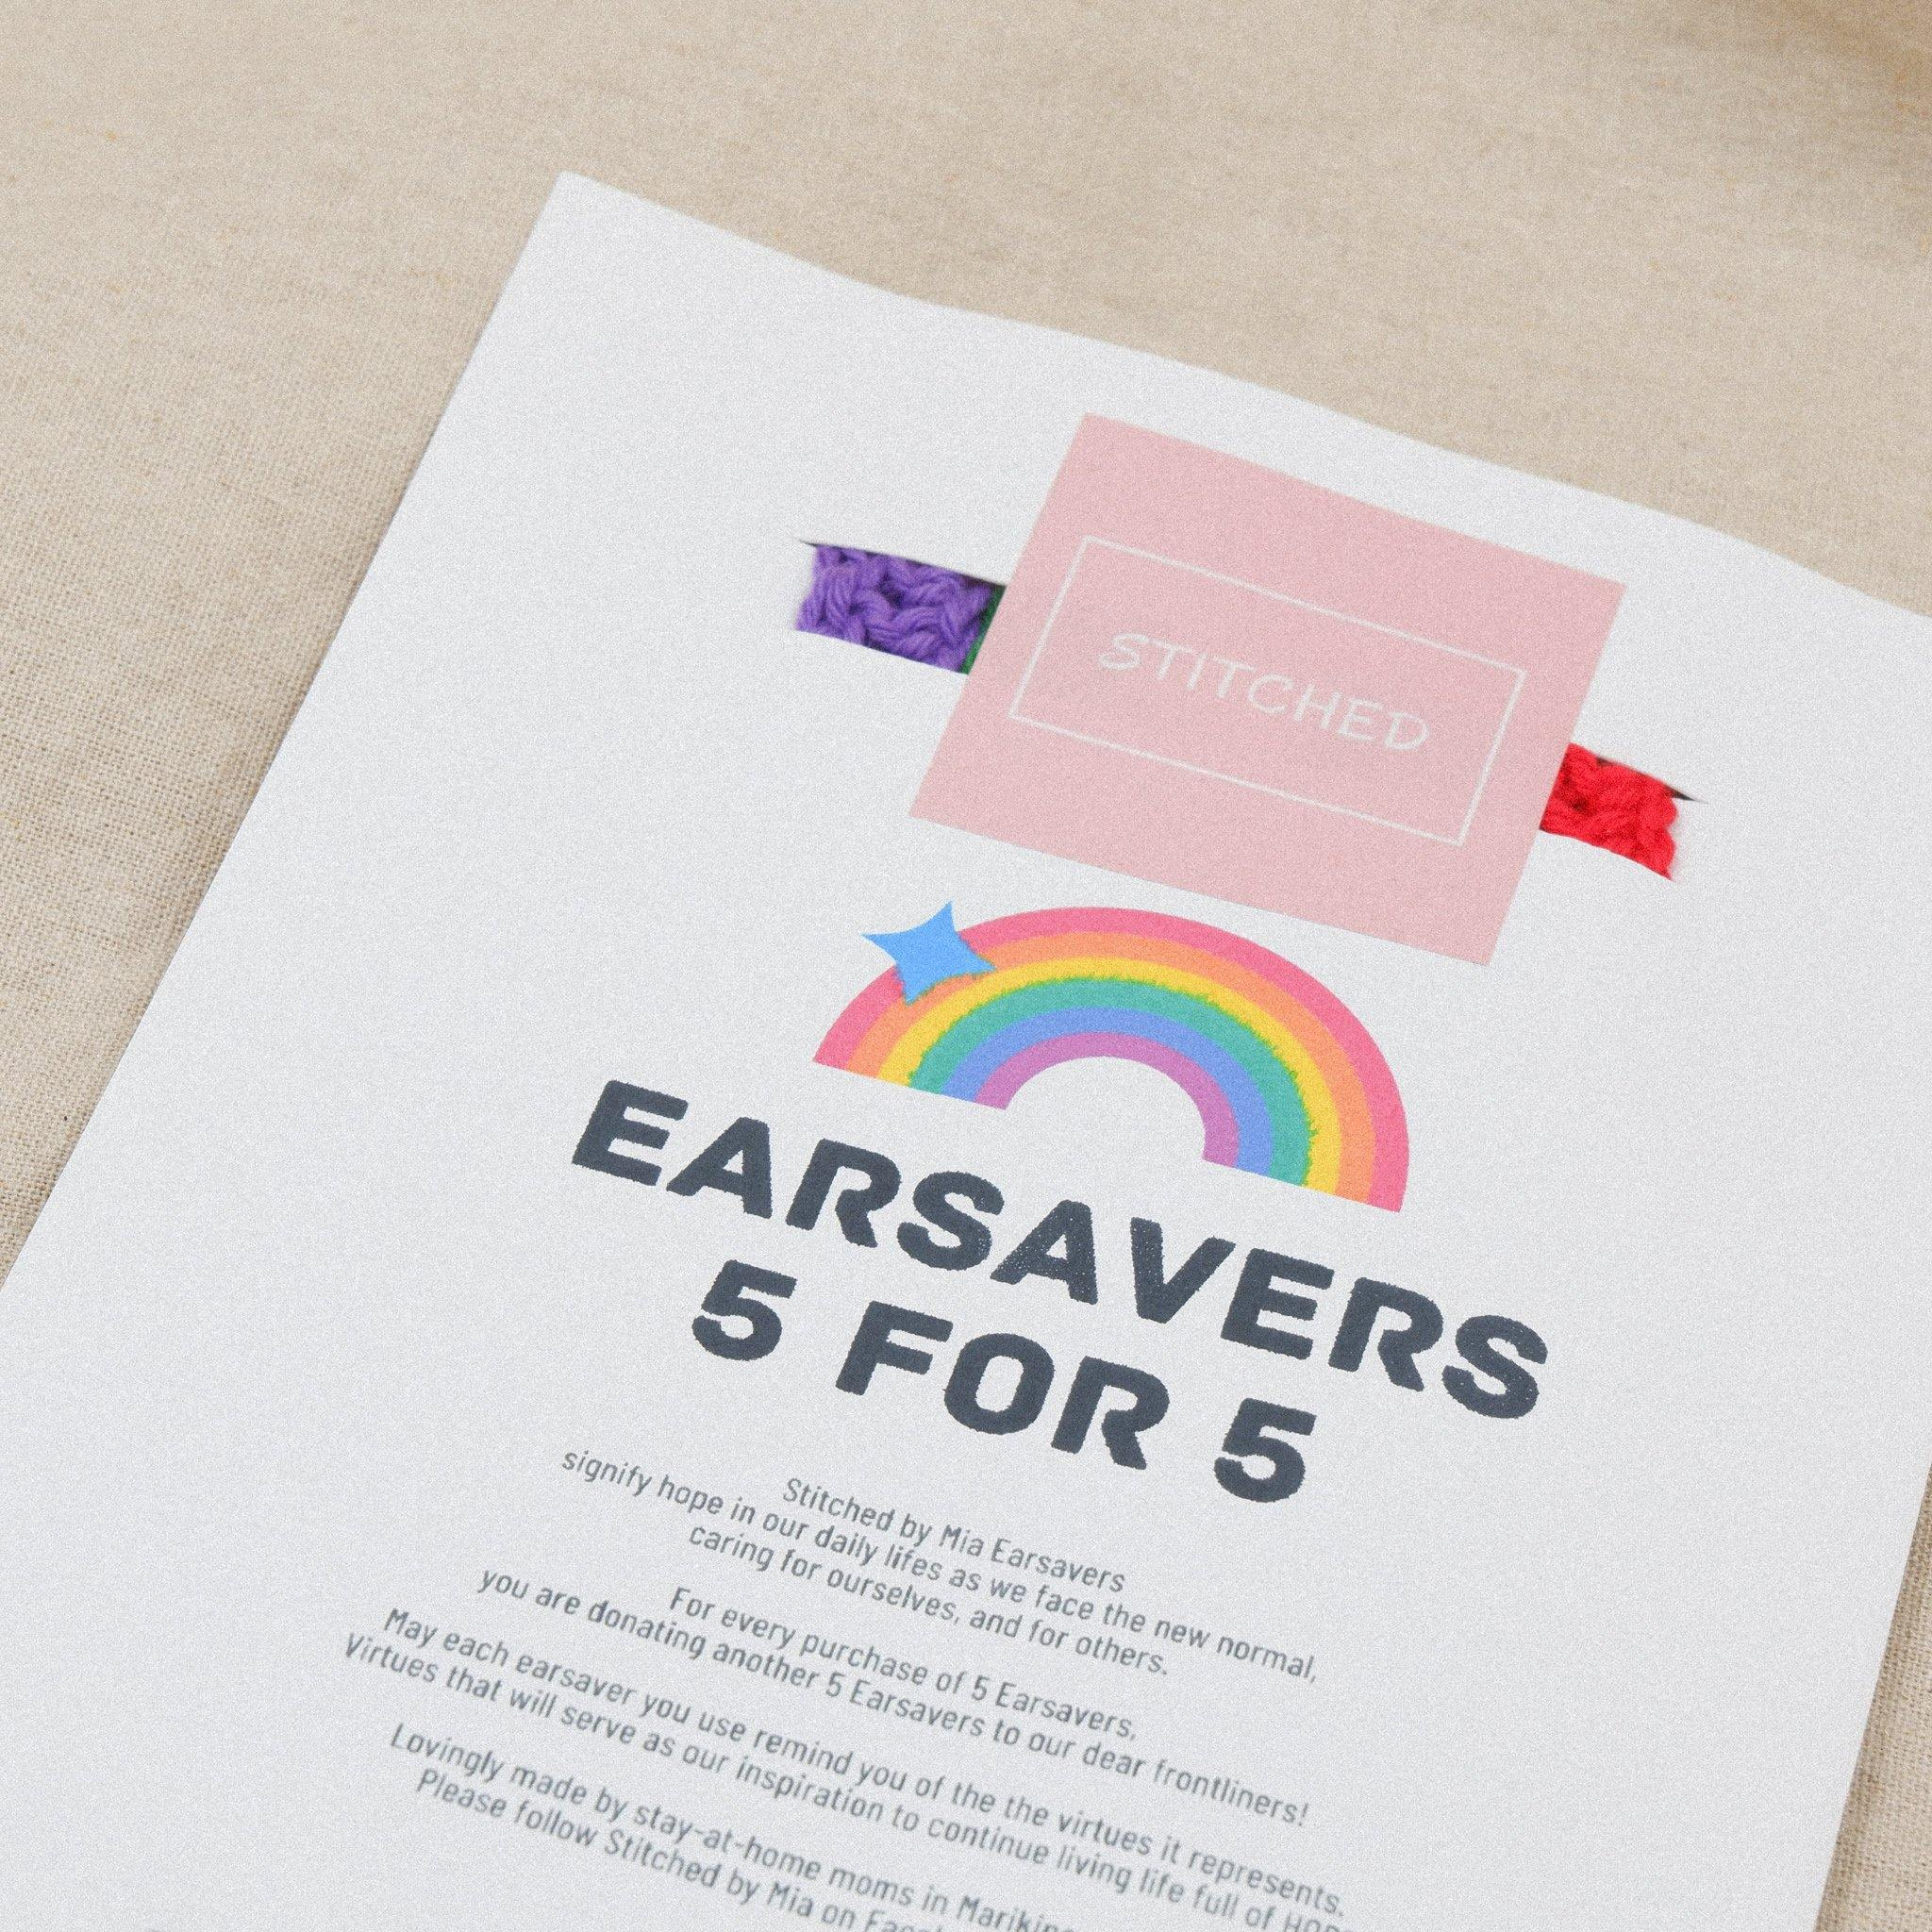 Earsavers 5 for 5